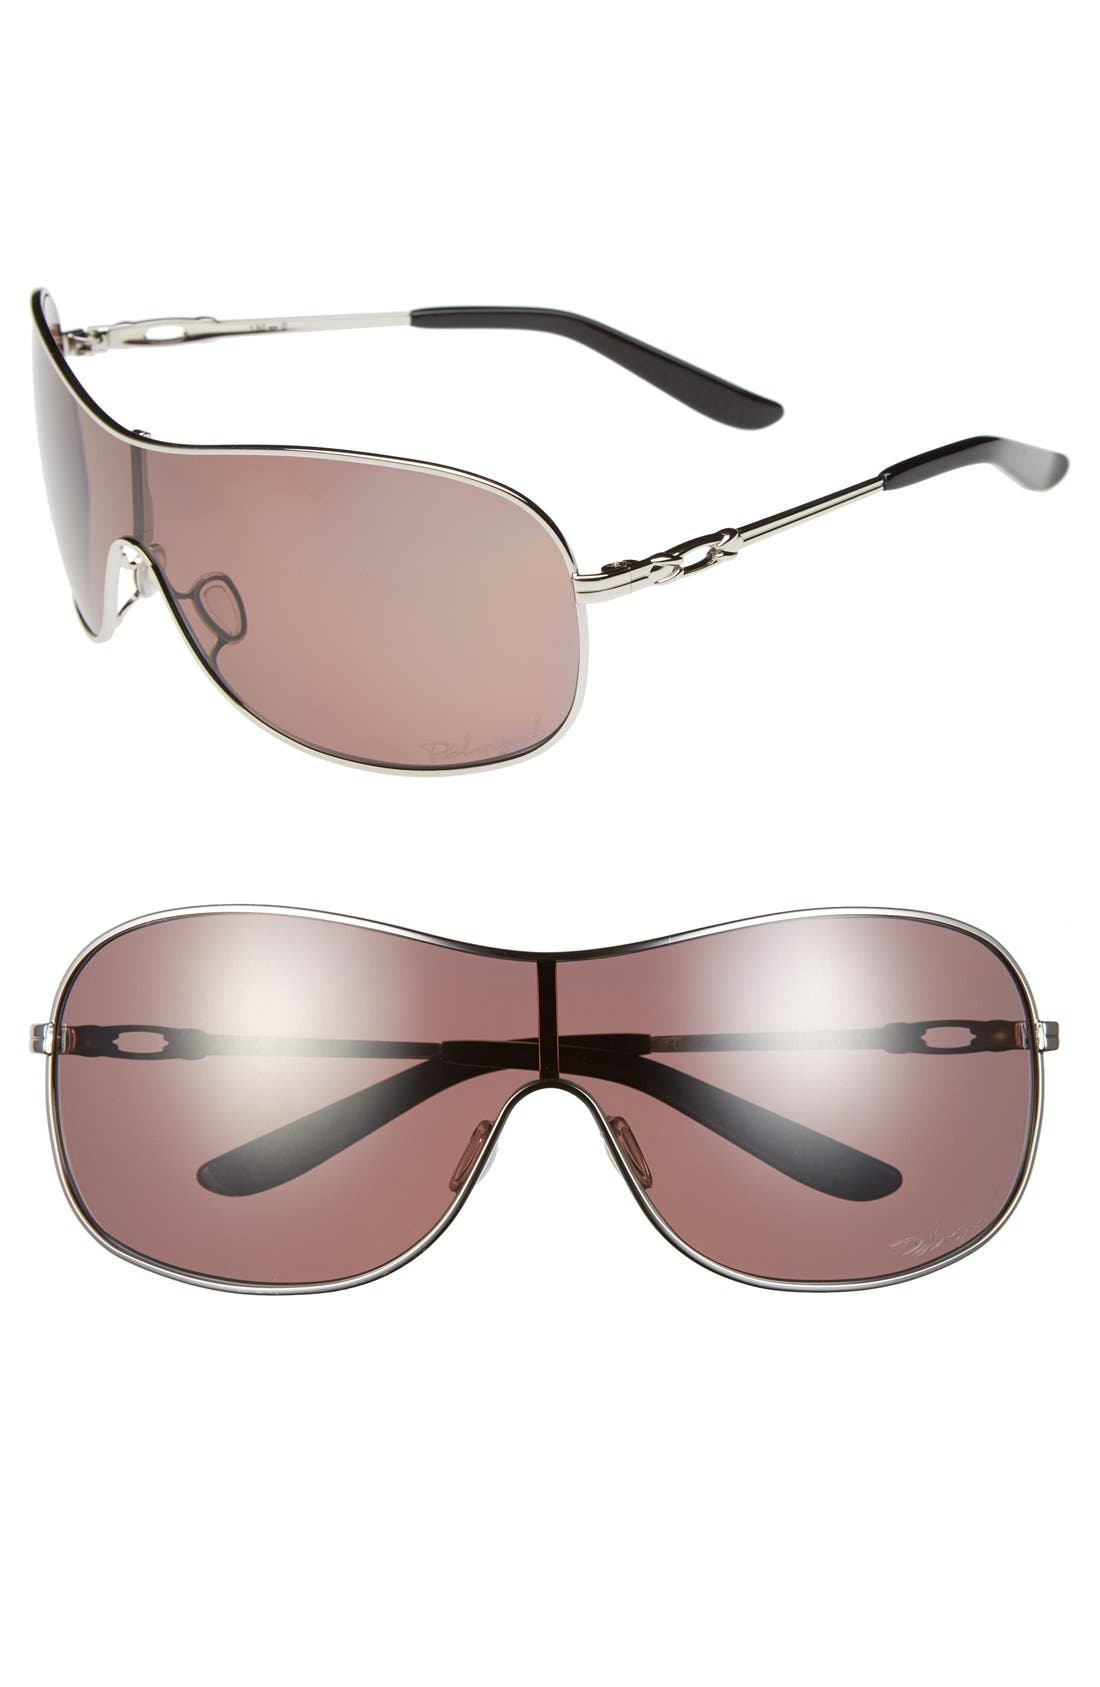 Alternate Image 1 Selected - Oakley 'Collected' Shield 130mm Sunglasses